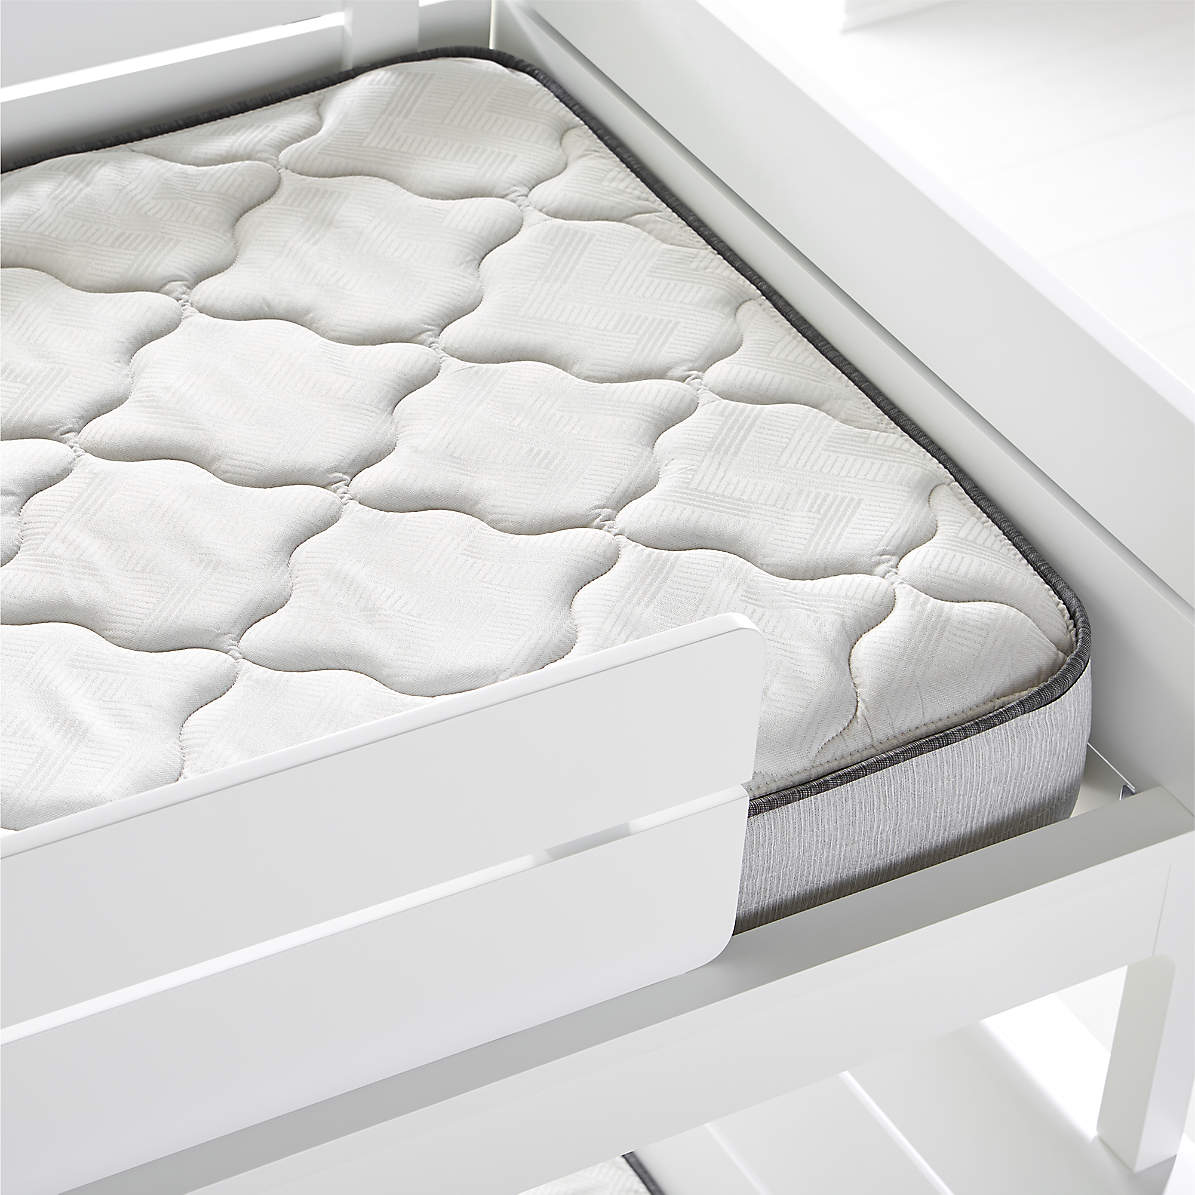 Picture of: Simmons Bunk Bed Mattress Crate And Barrel